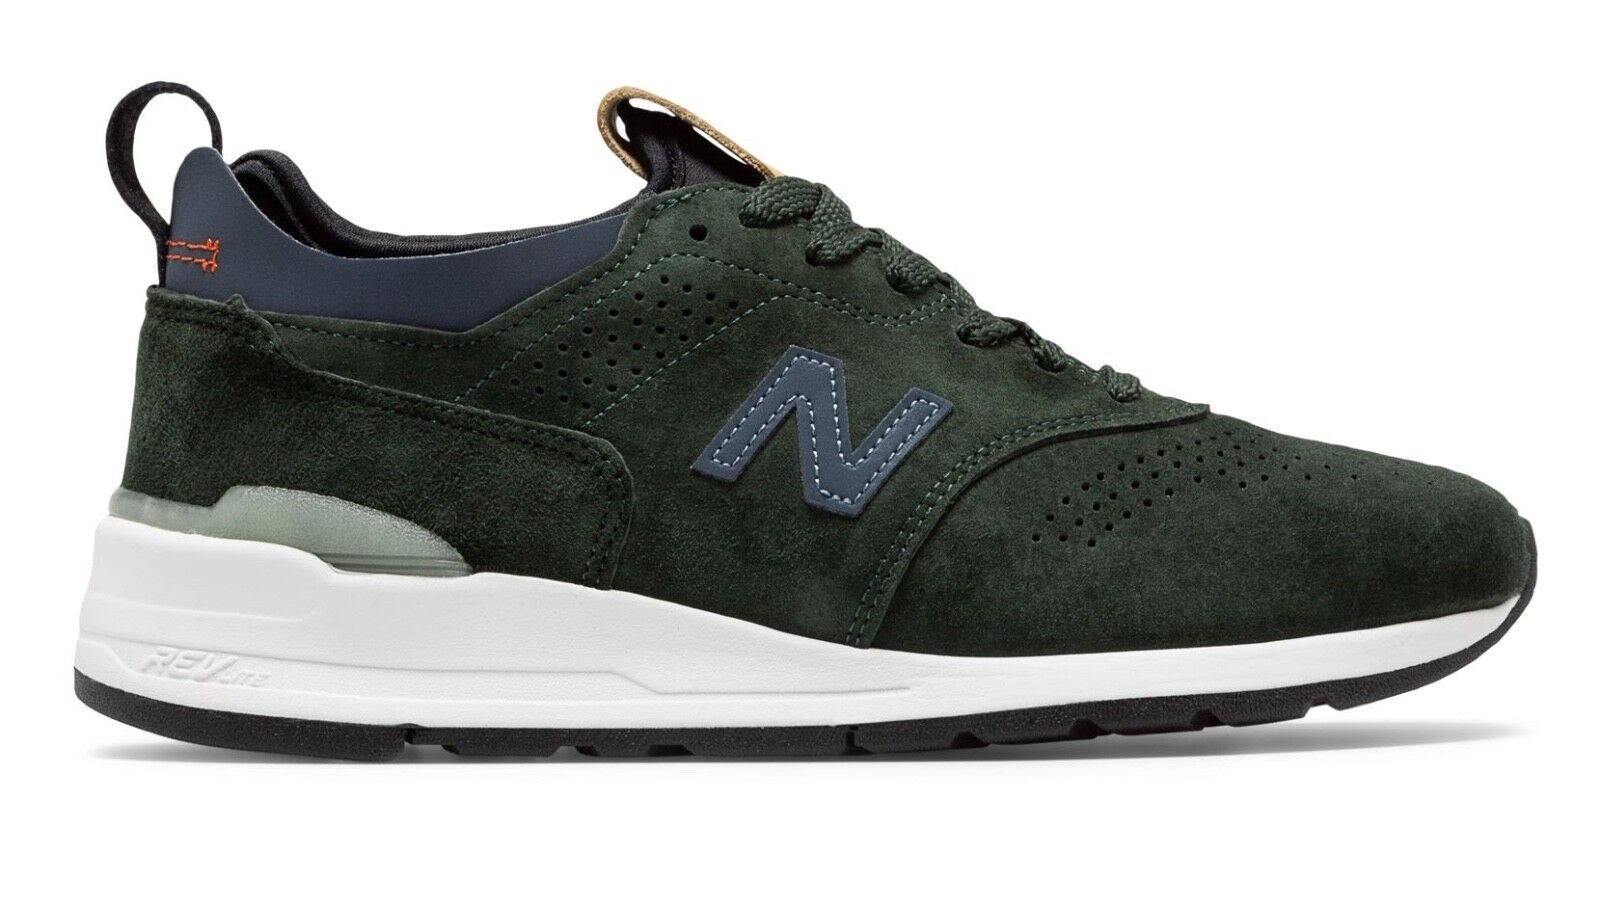 New New New Balance M997 M997HB2 Green Suede Made In USA Men SZ 8 - 13 2a3160